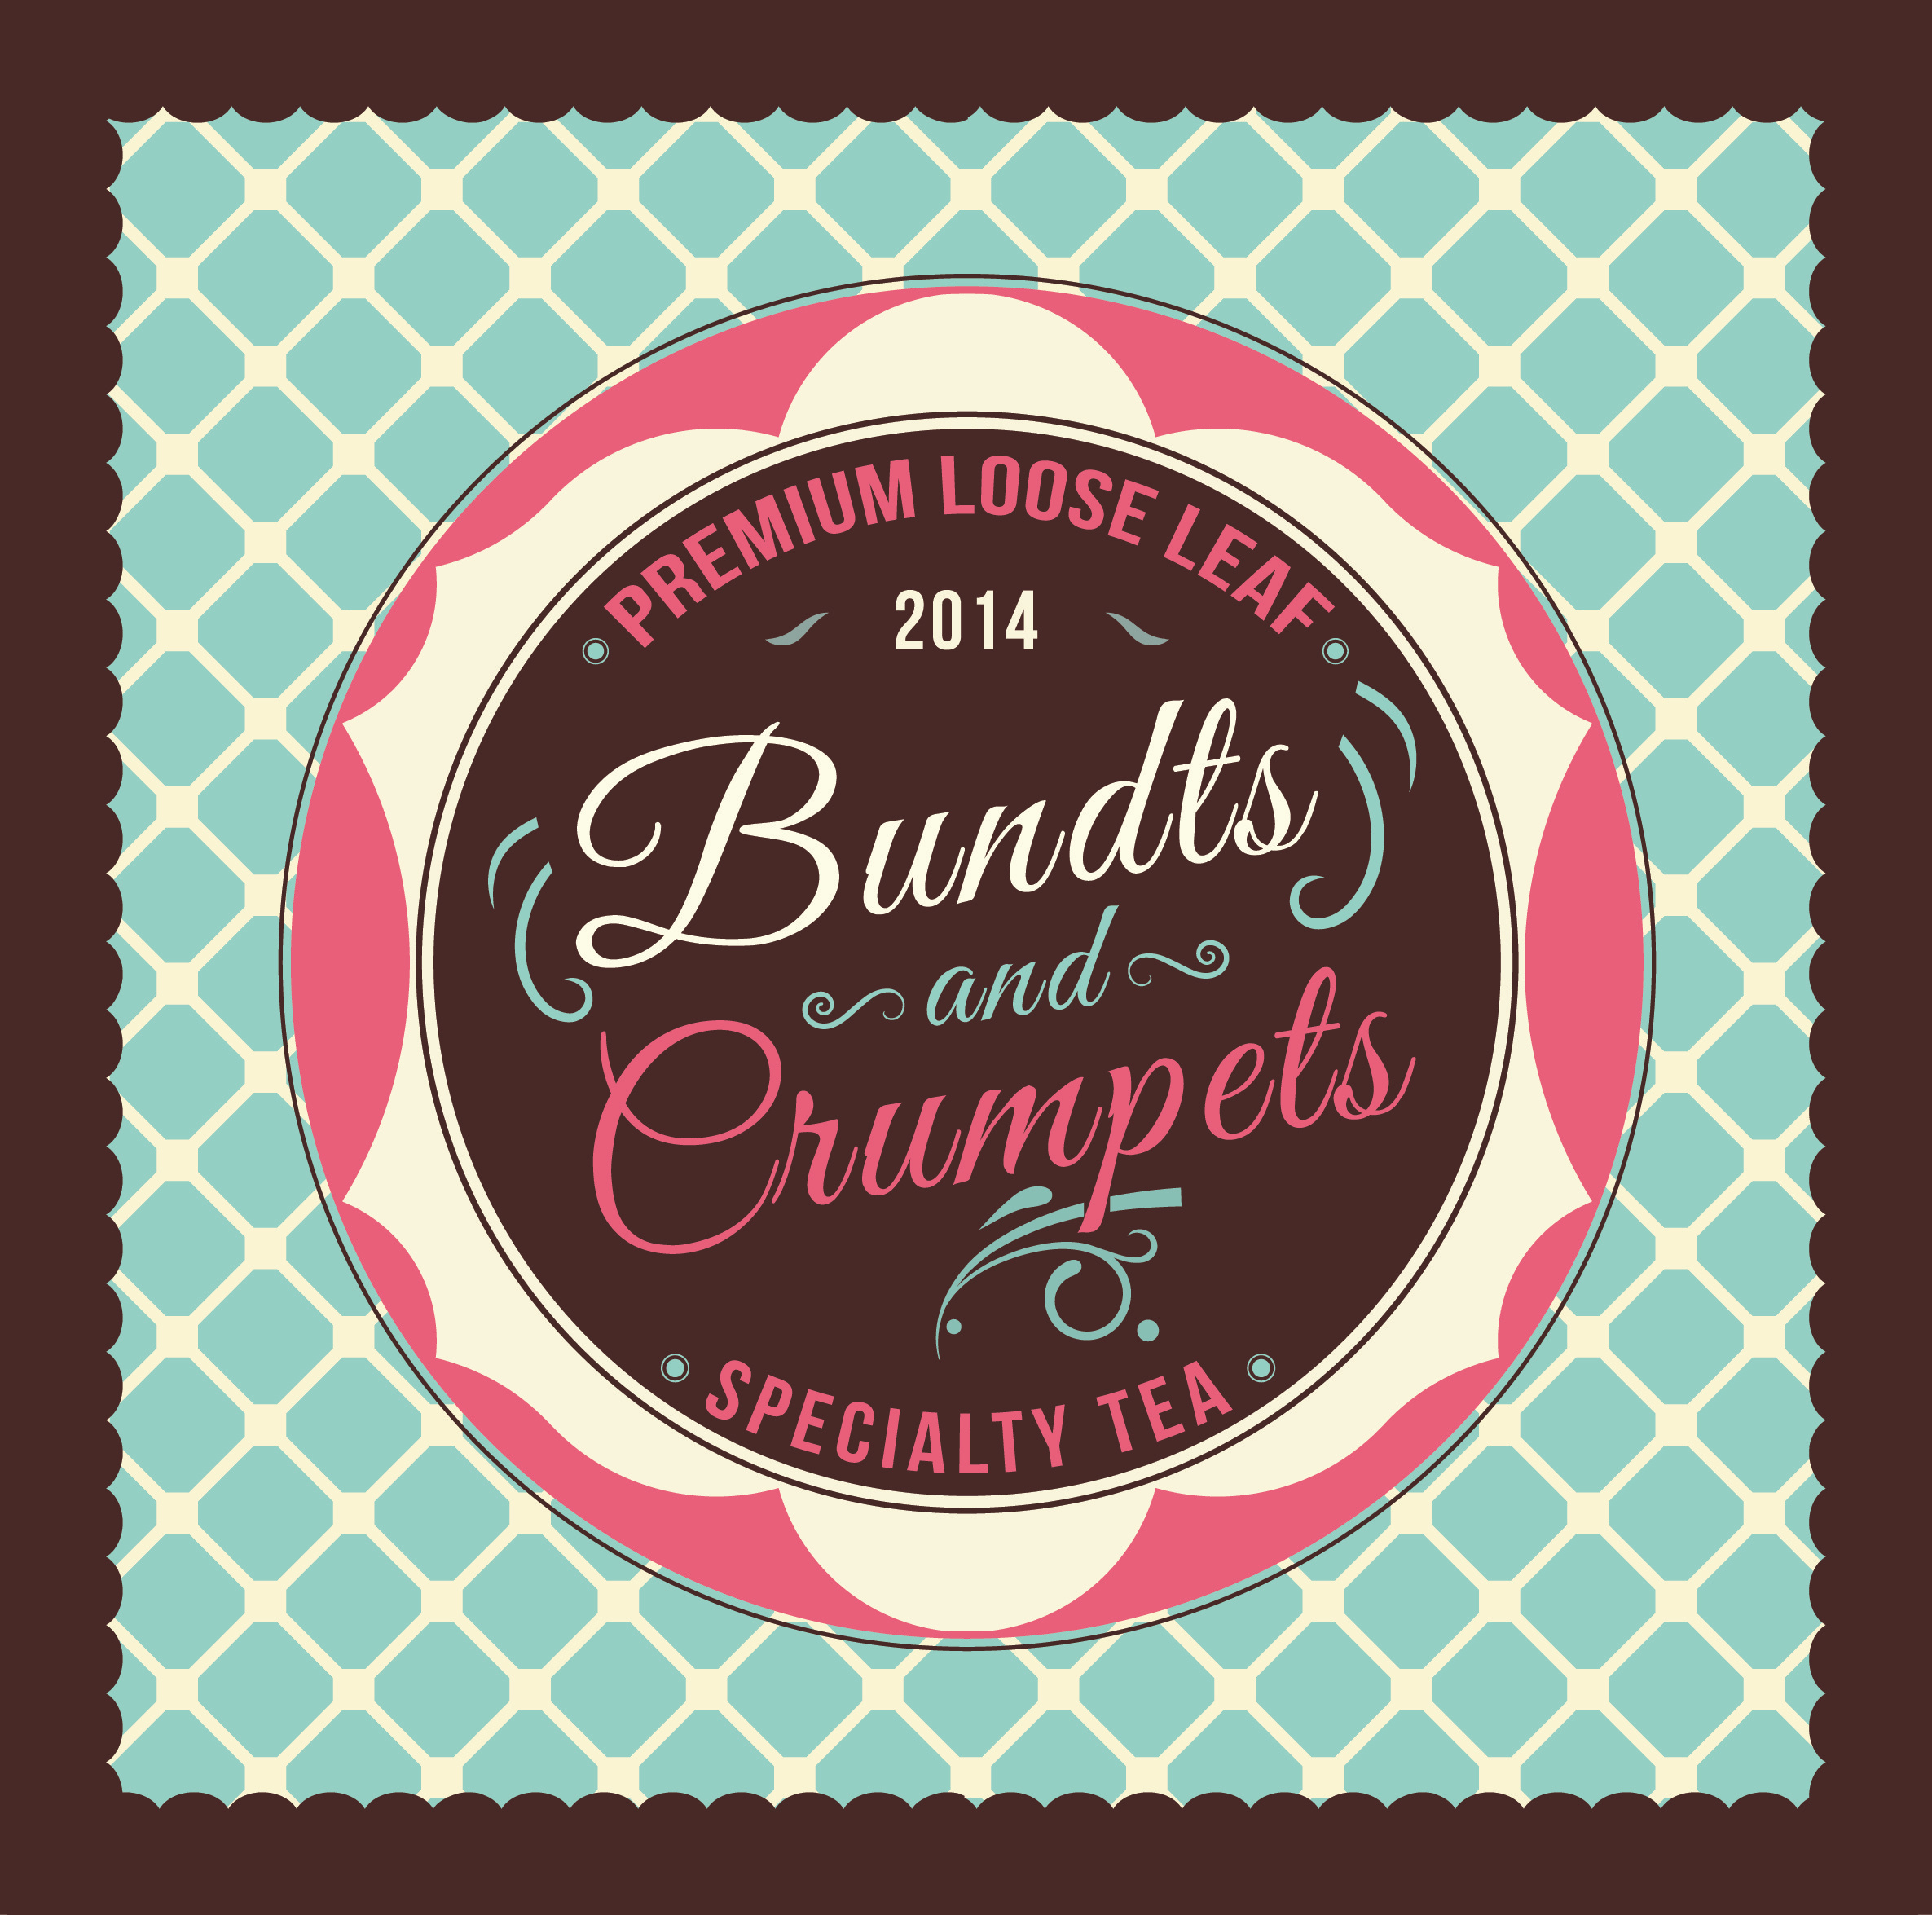 Bundts and Crumpets